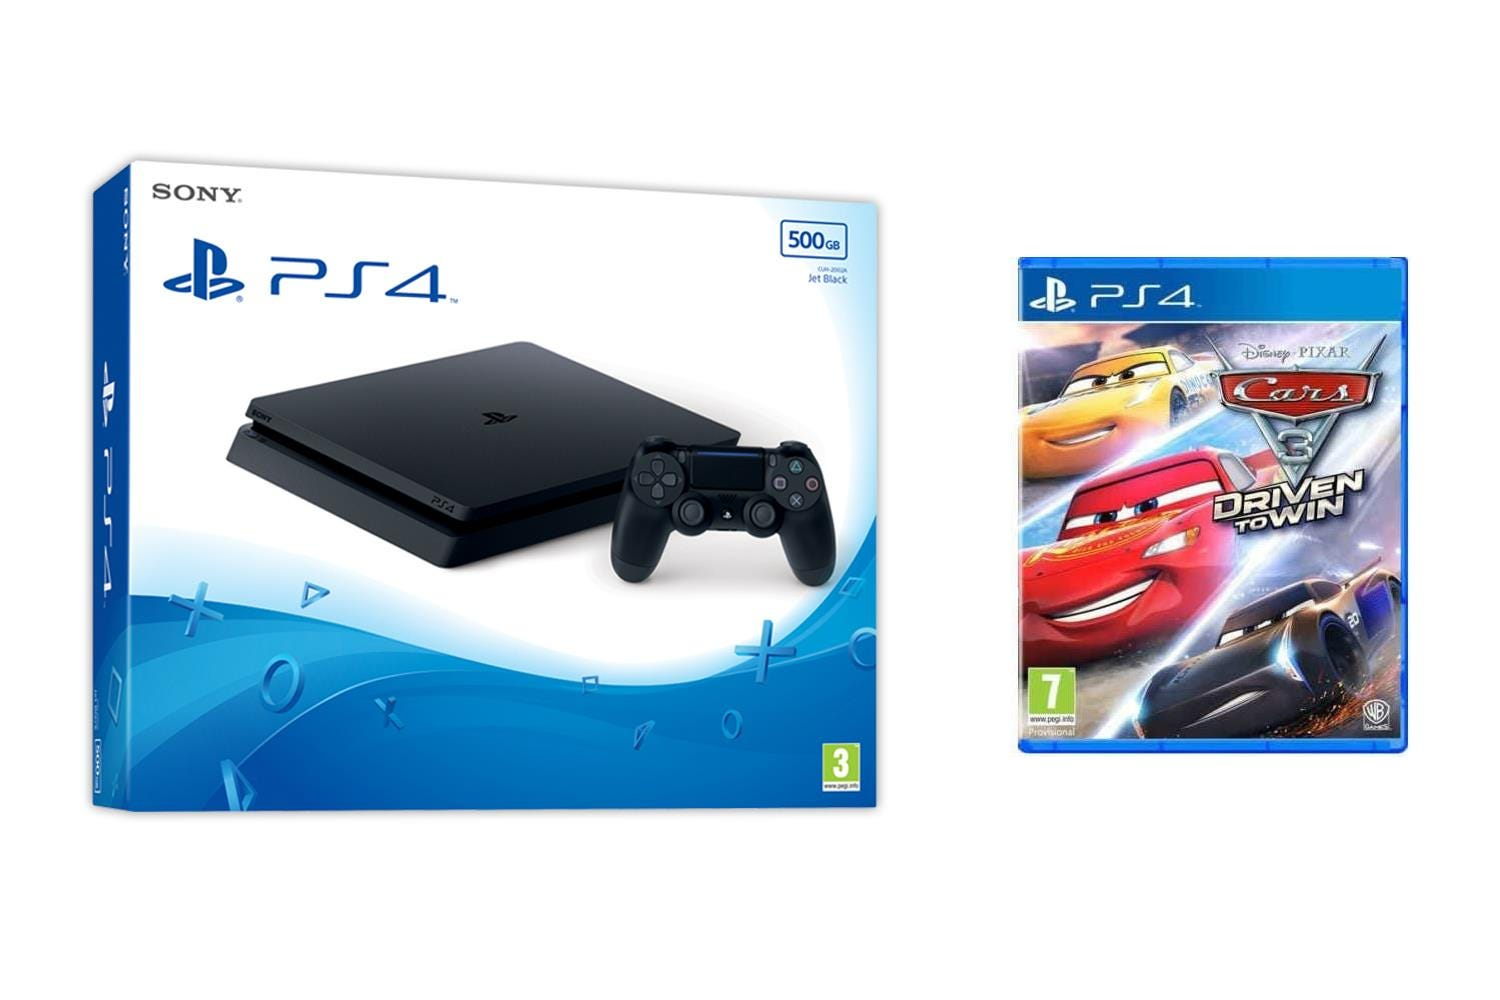 Sony PlayStation 4 500GB Jet Black Console with Cars 3: Driven To Win